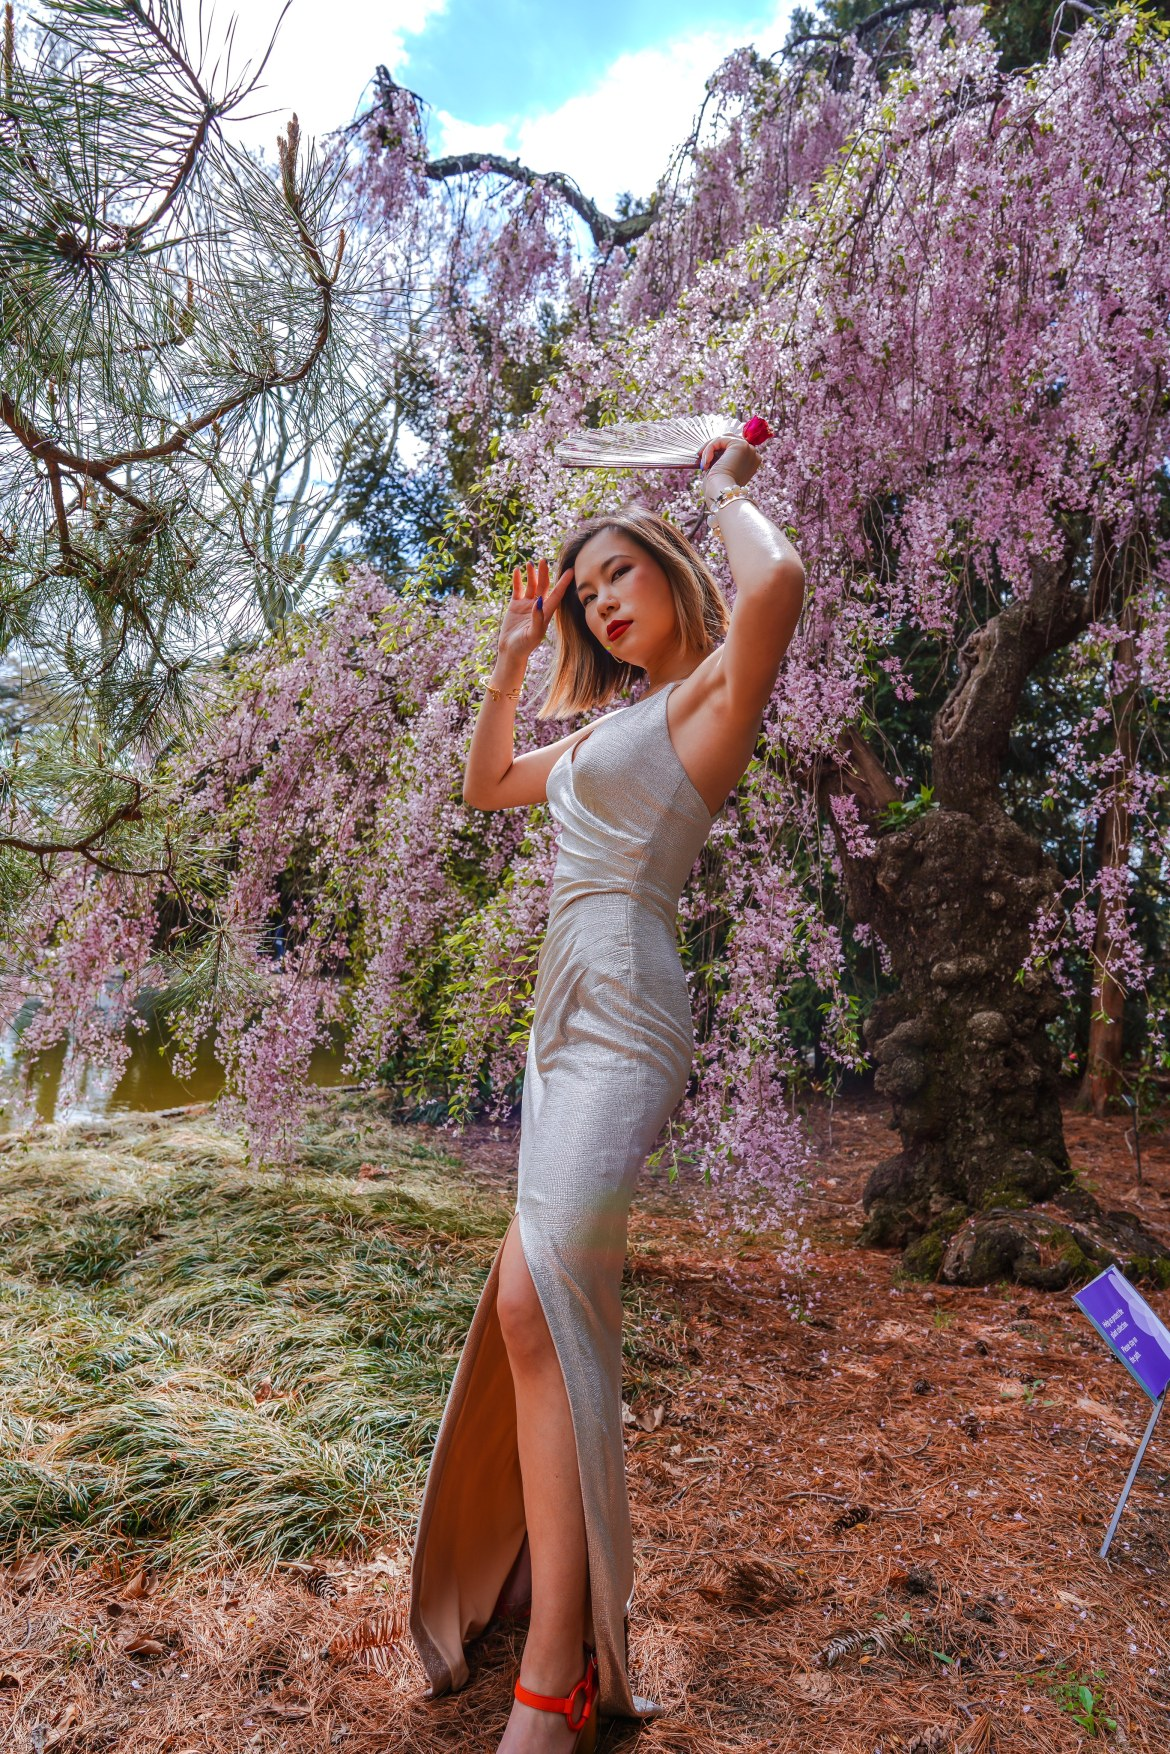 Kasey Ma of The StyleWright Wearing Eliza J Dress Posing by Cherry Blossom Tree